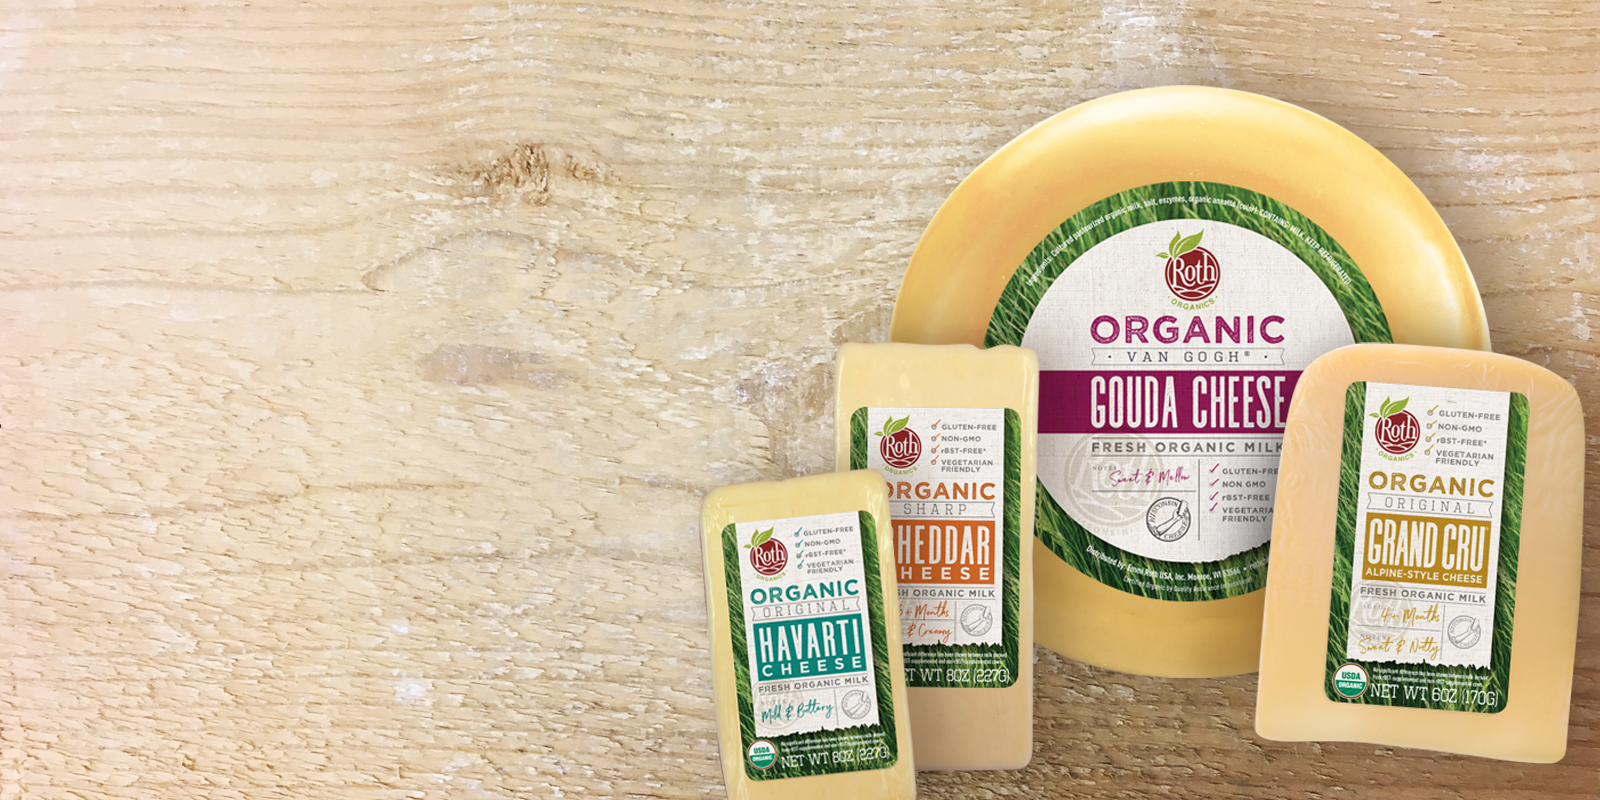 See how good organic can taste.